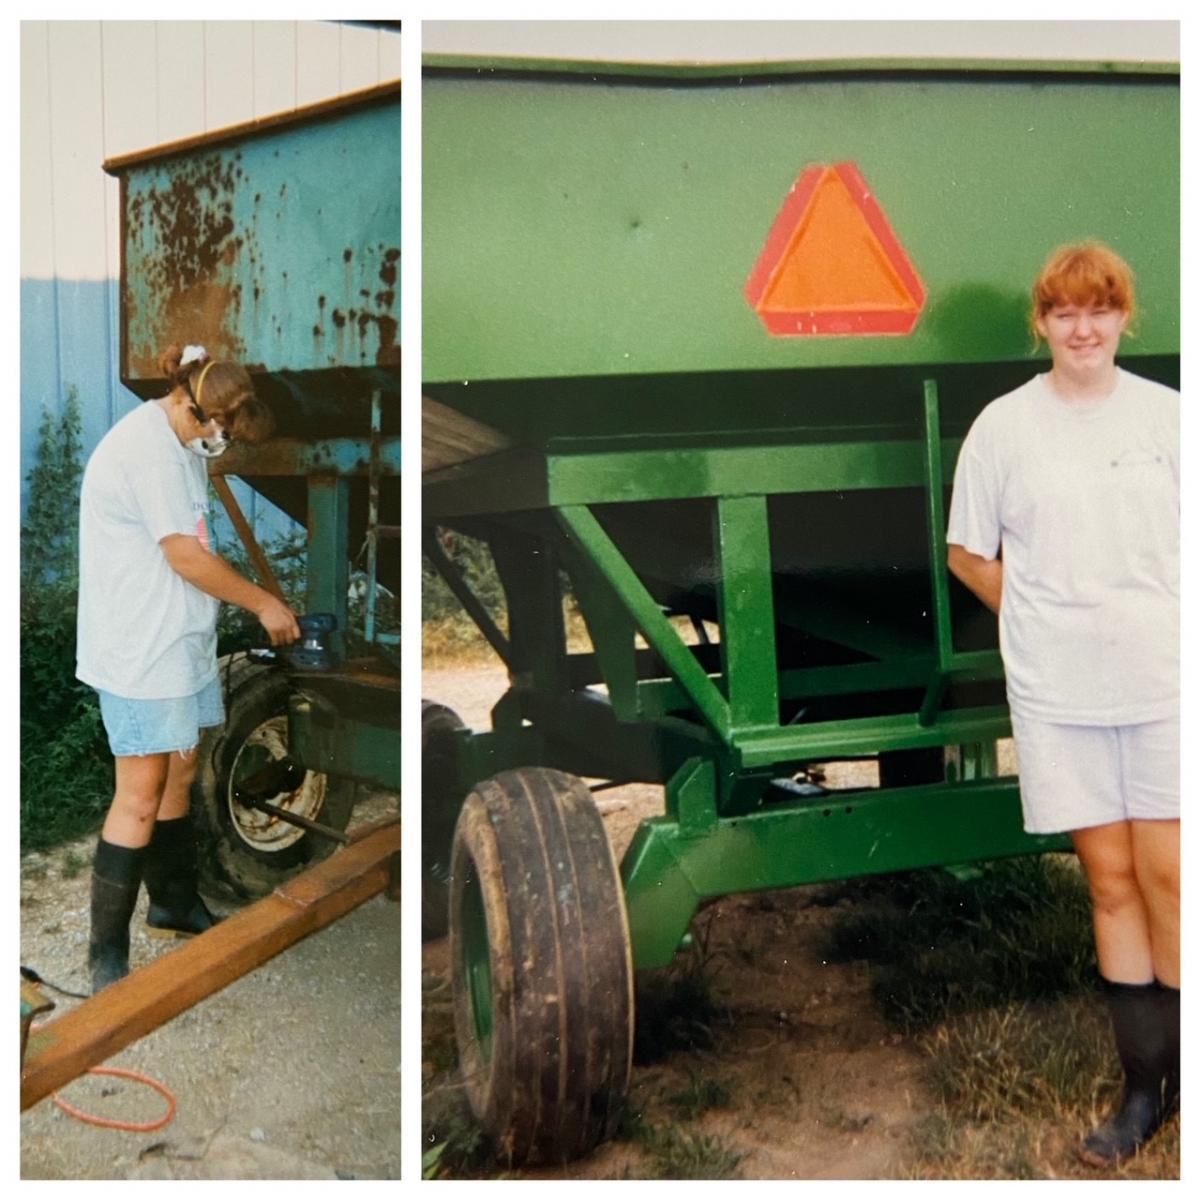 Photo 1) A teenage female using power tools on a gravity wagon. Photo 2) A teenage girl smiling at the camera in front of a refurbished gravity wagon.